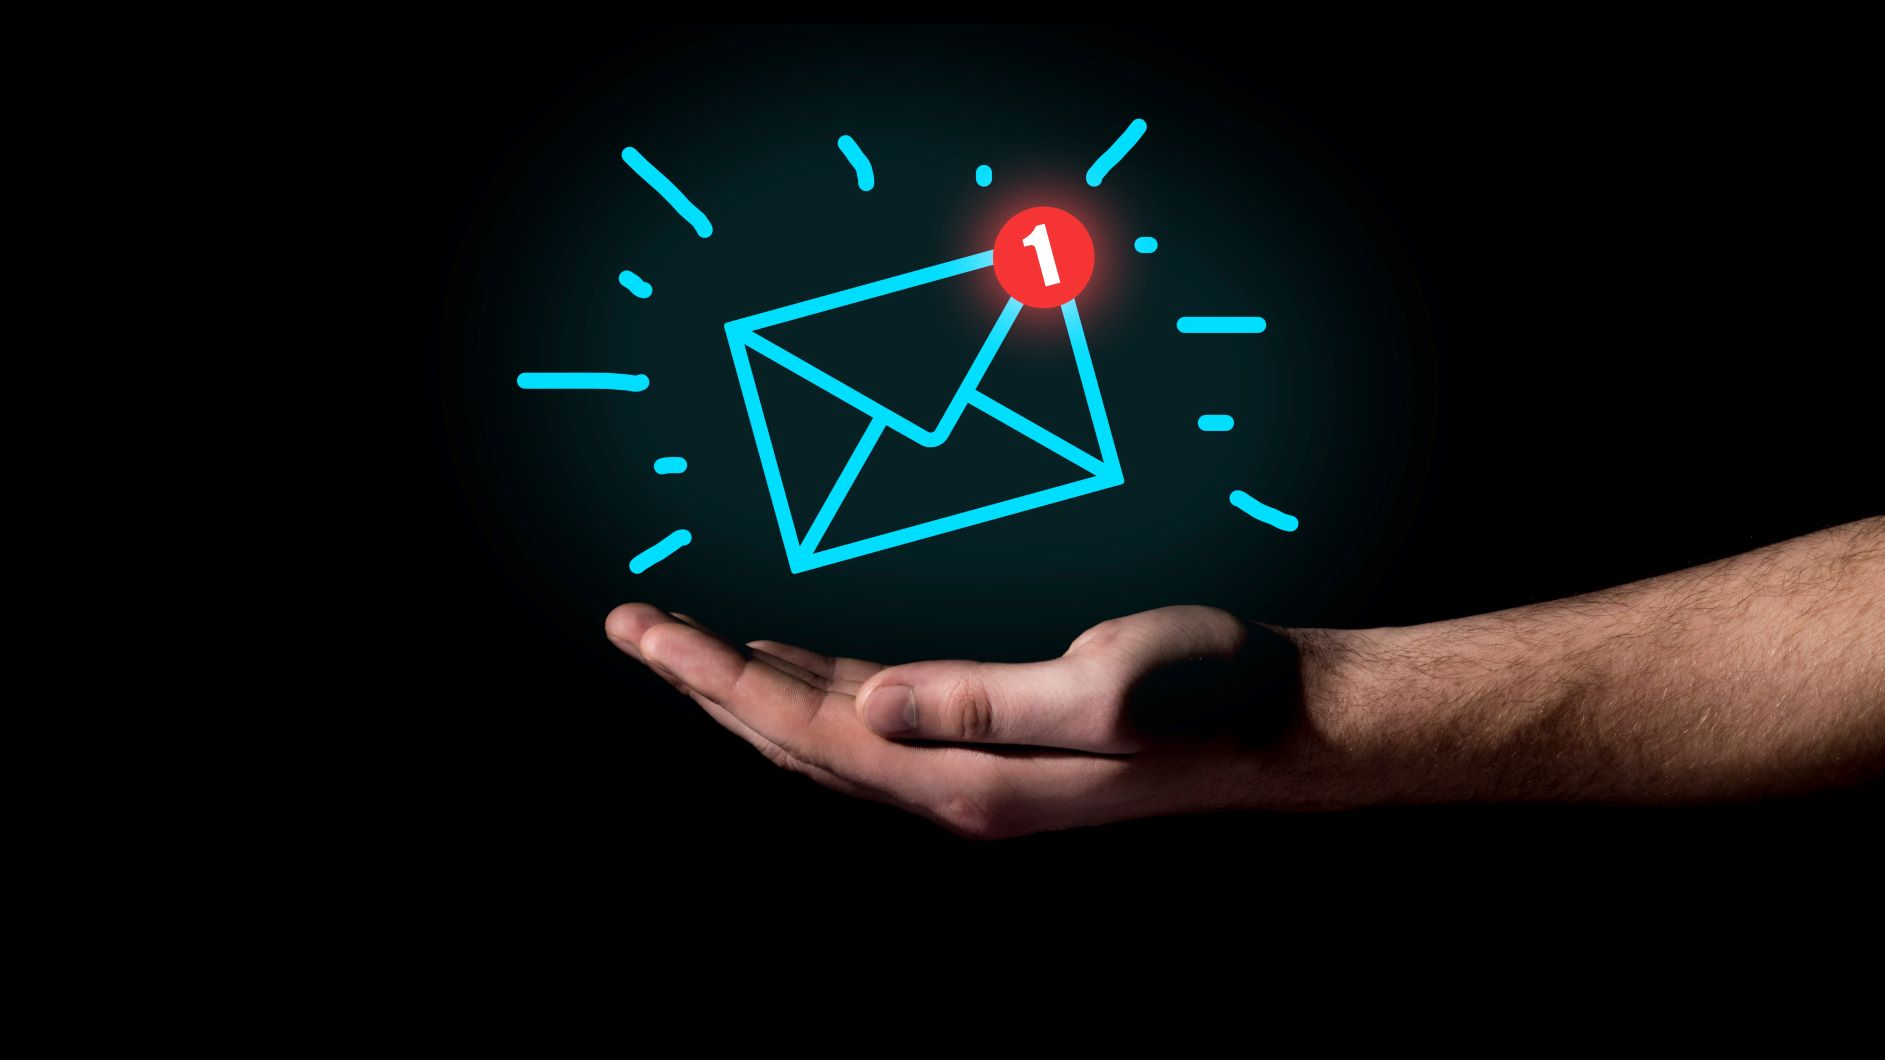 Hand holds email icon